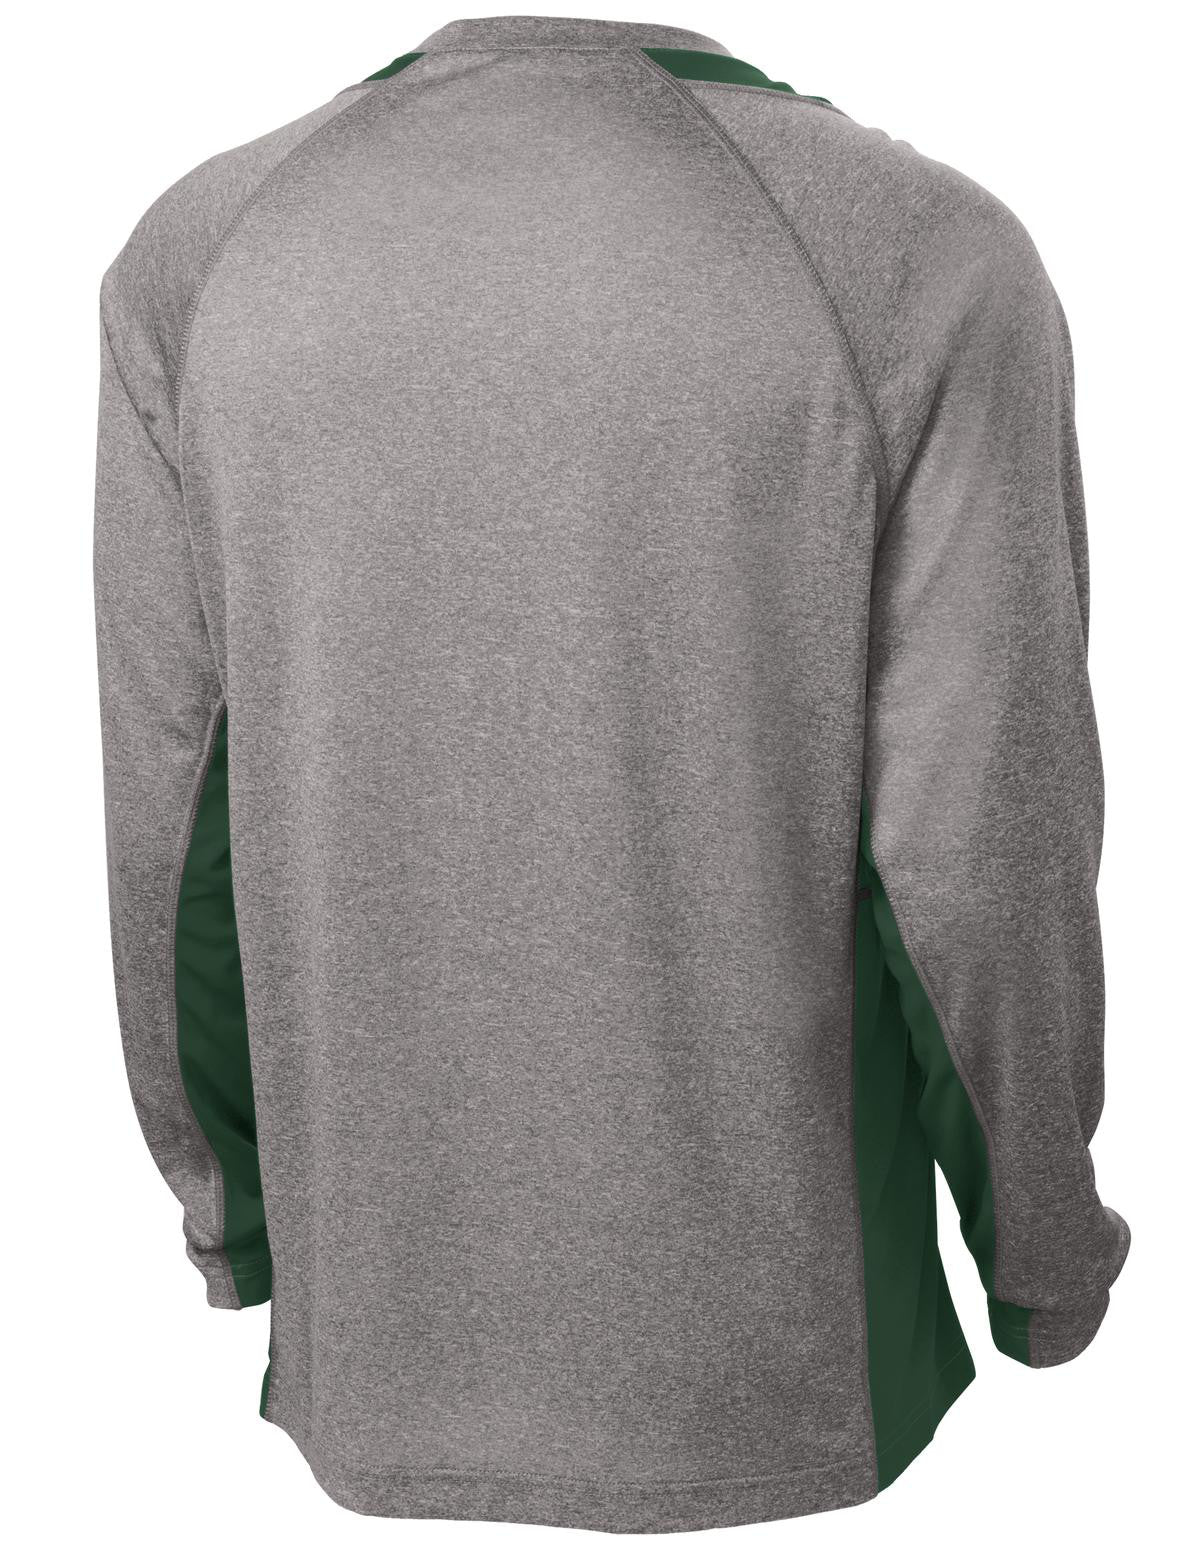 Mafoose Men's Long Sleeve Heather Colorblock Contender Tee Shirt Vintage Heather/ Forest Green-Back